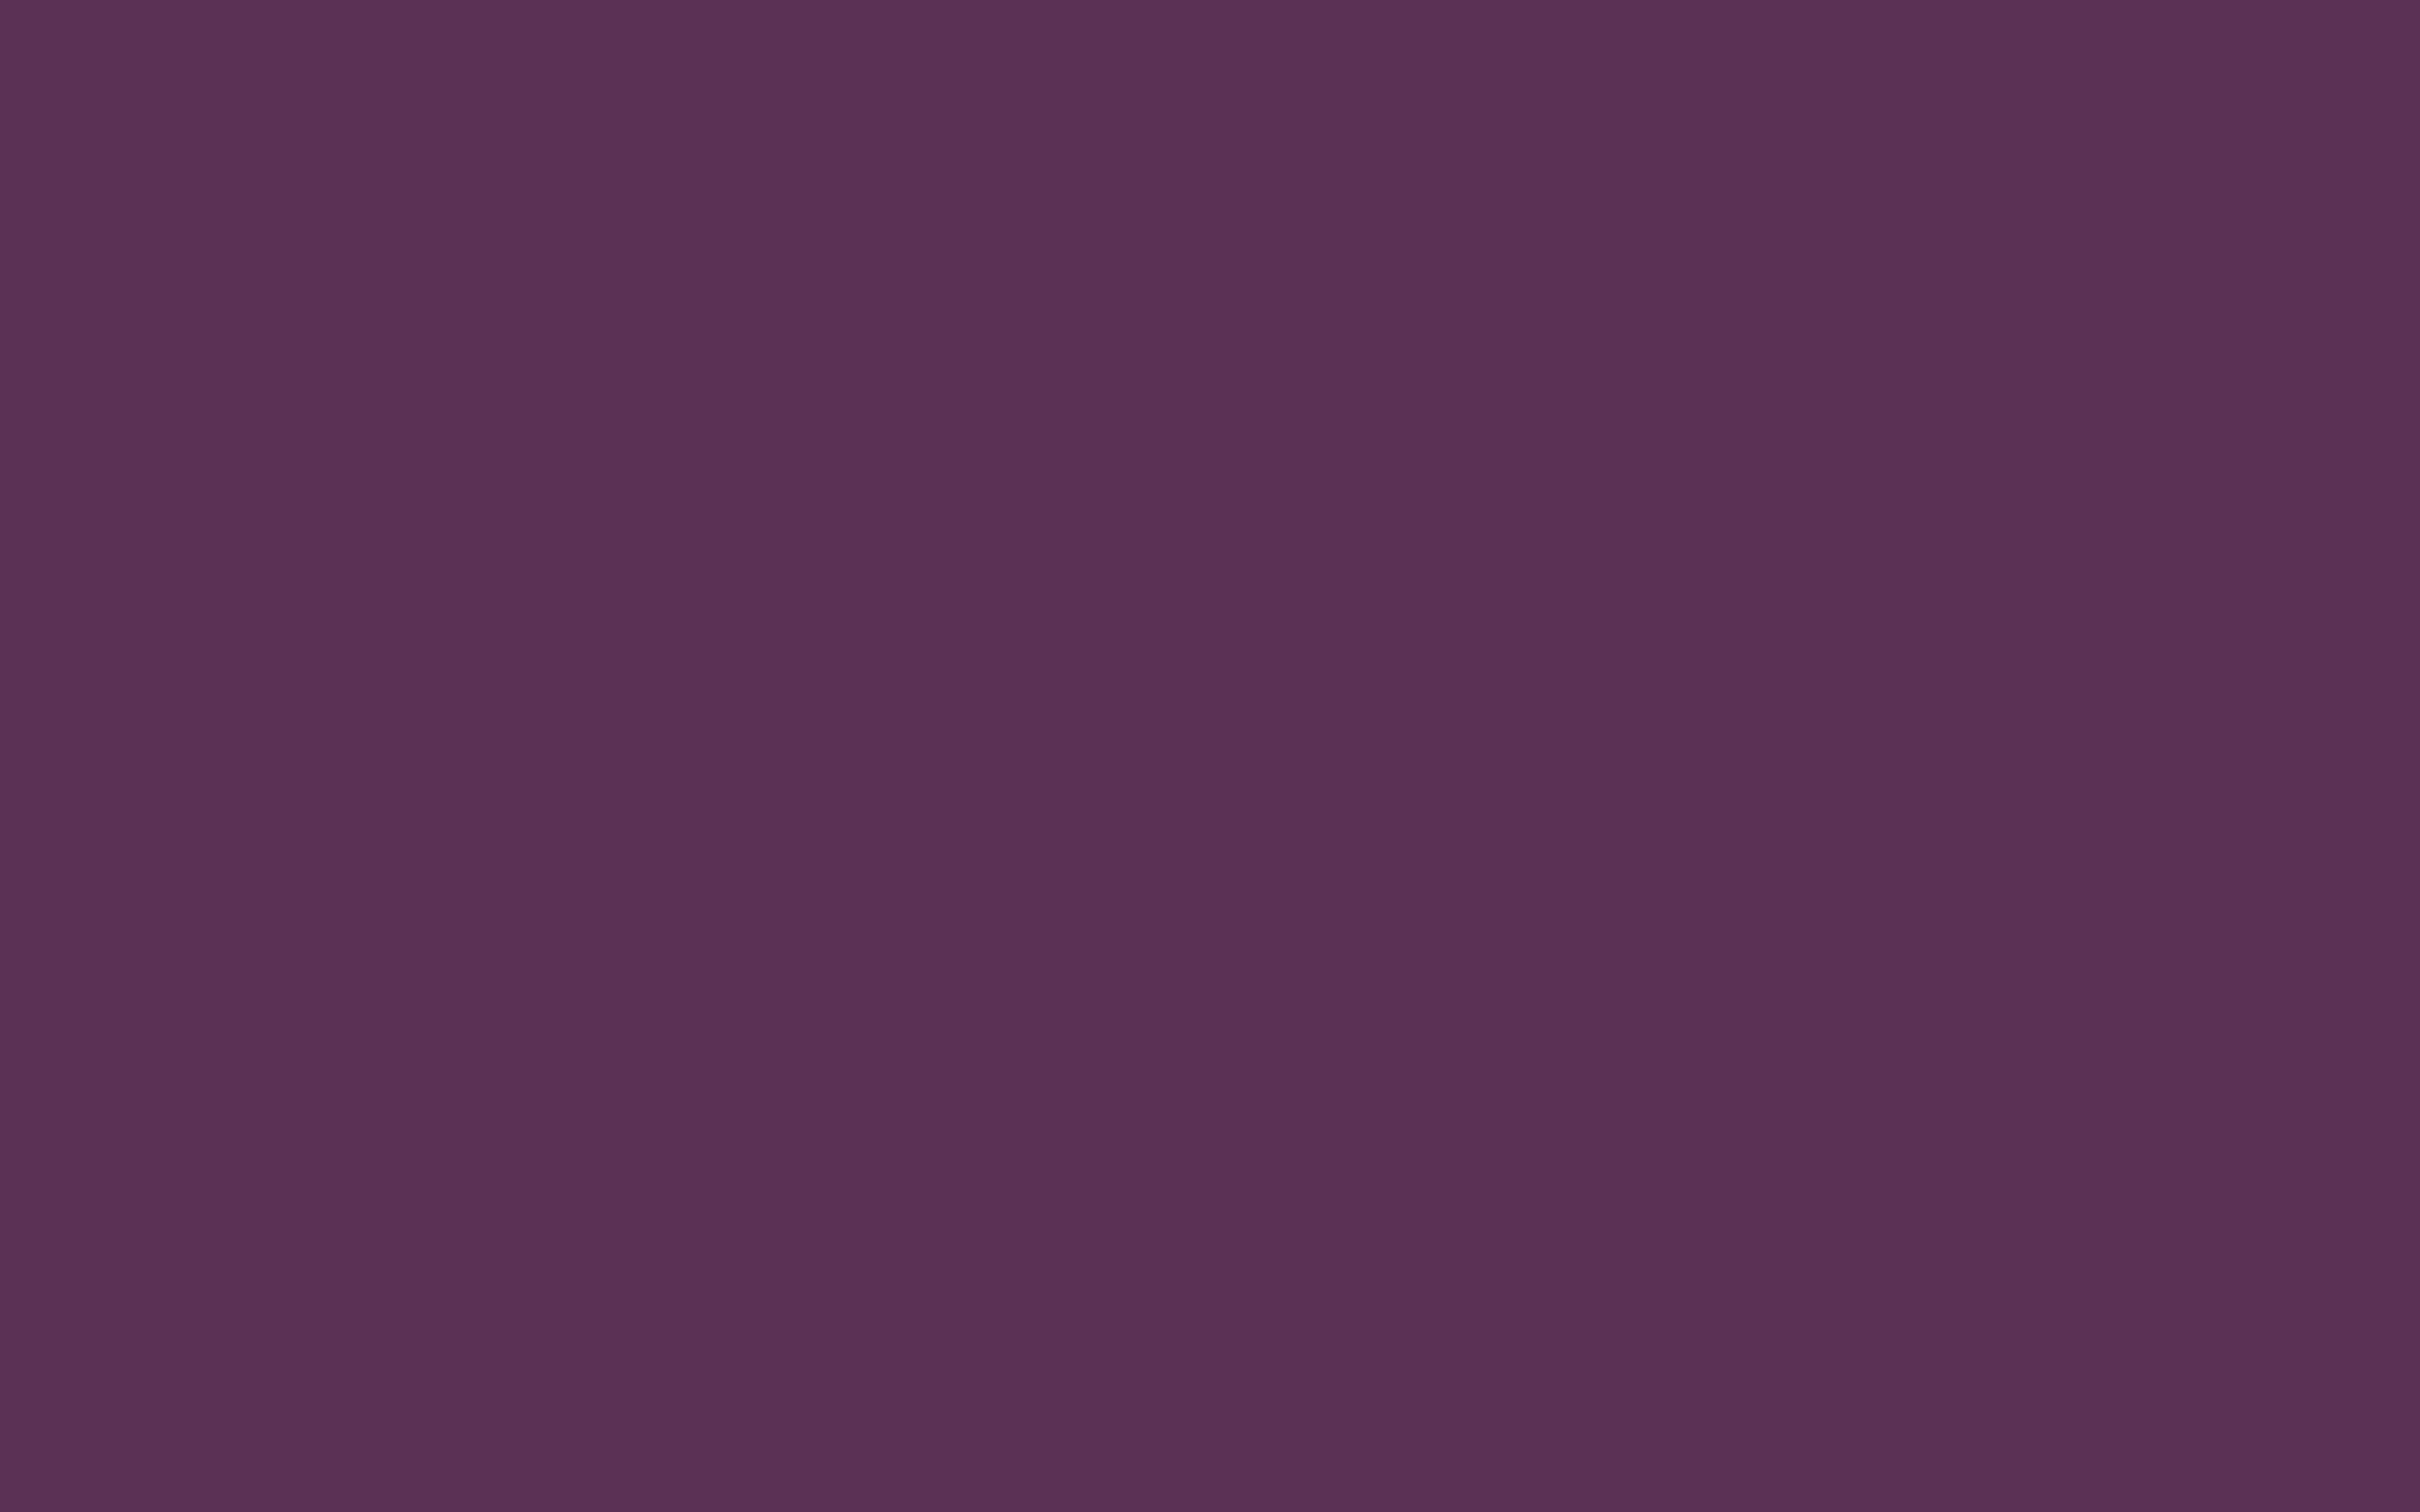 2560x1600 Japanese Violet Solid Color Background